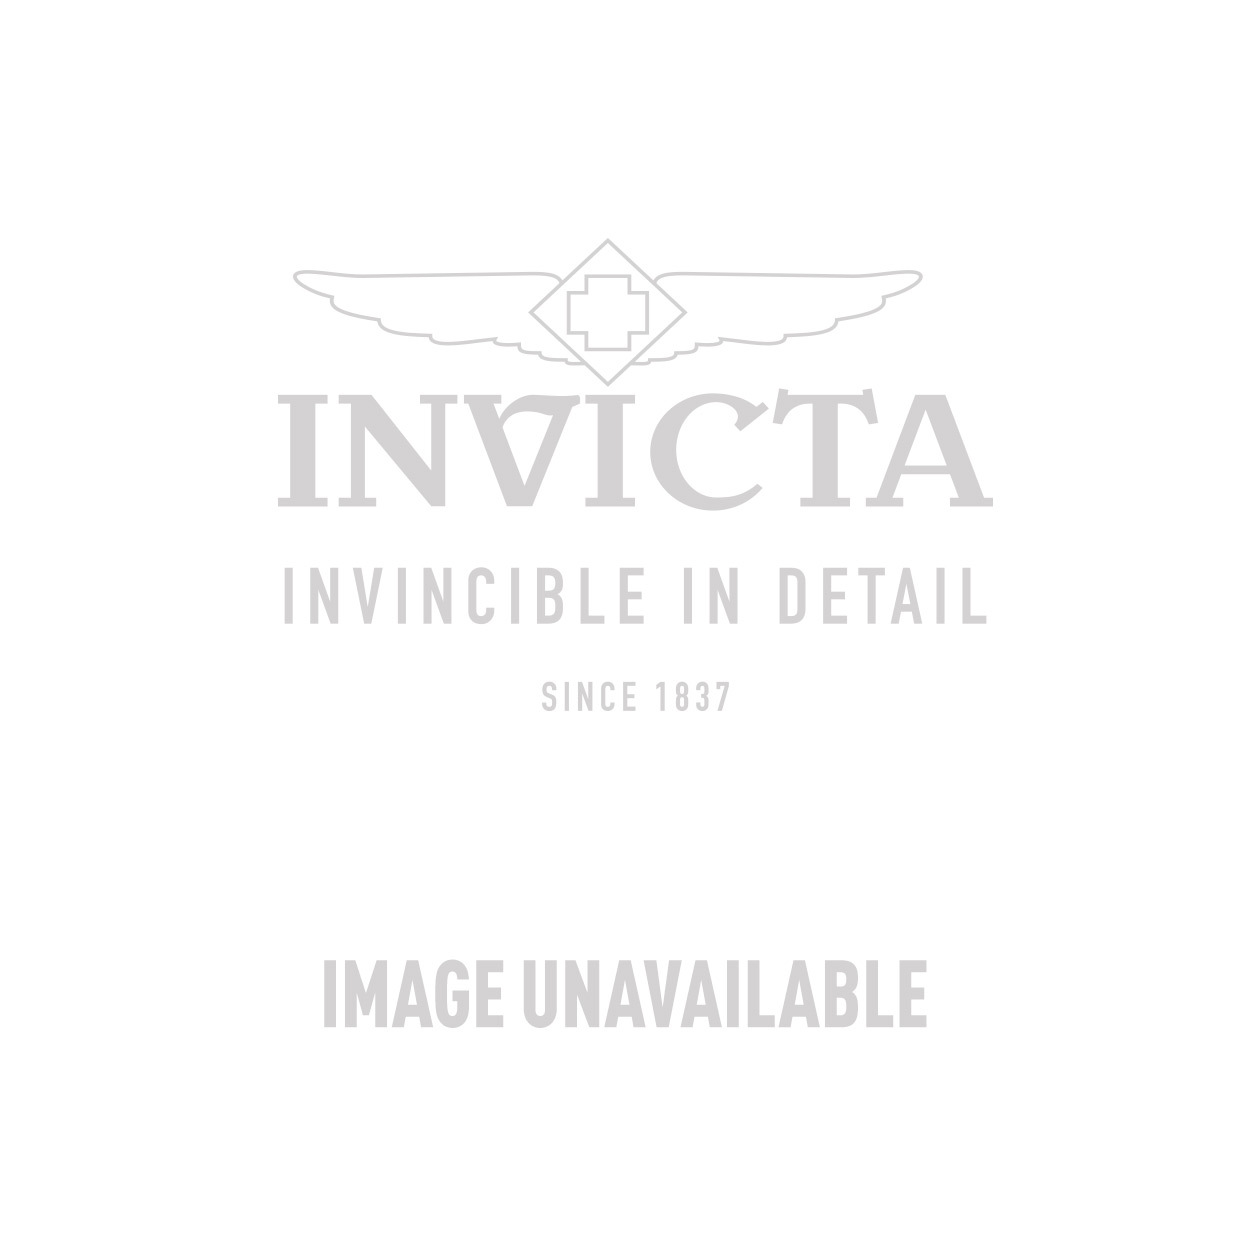 Invicta S1 Rally Quartz Watch - Black, Stainless Steel case Stainless Steel band - Model 19428